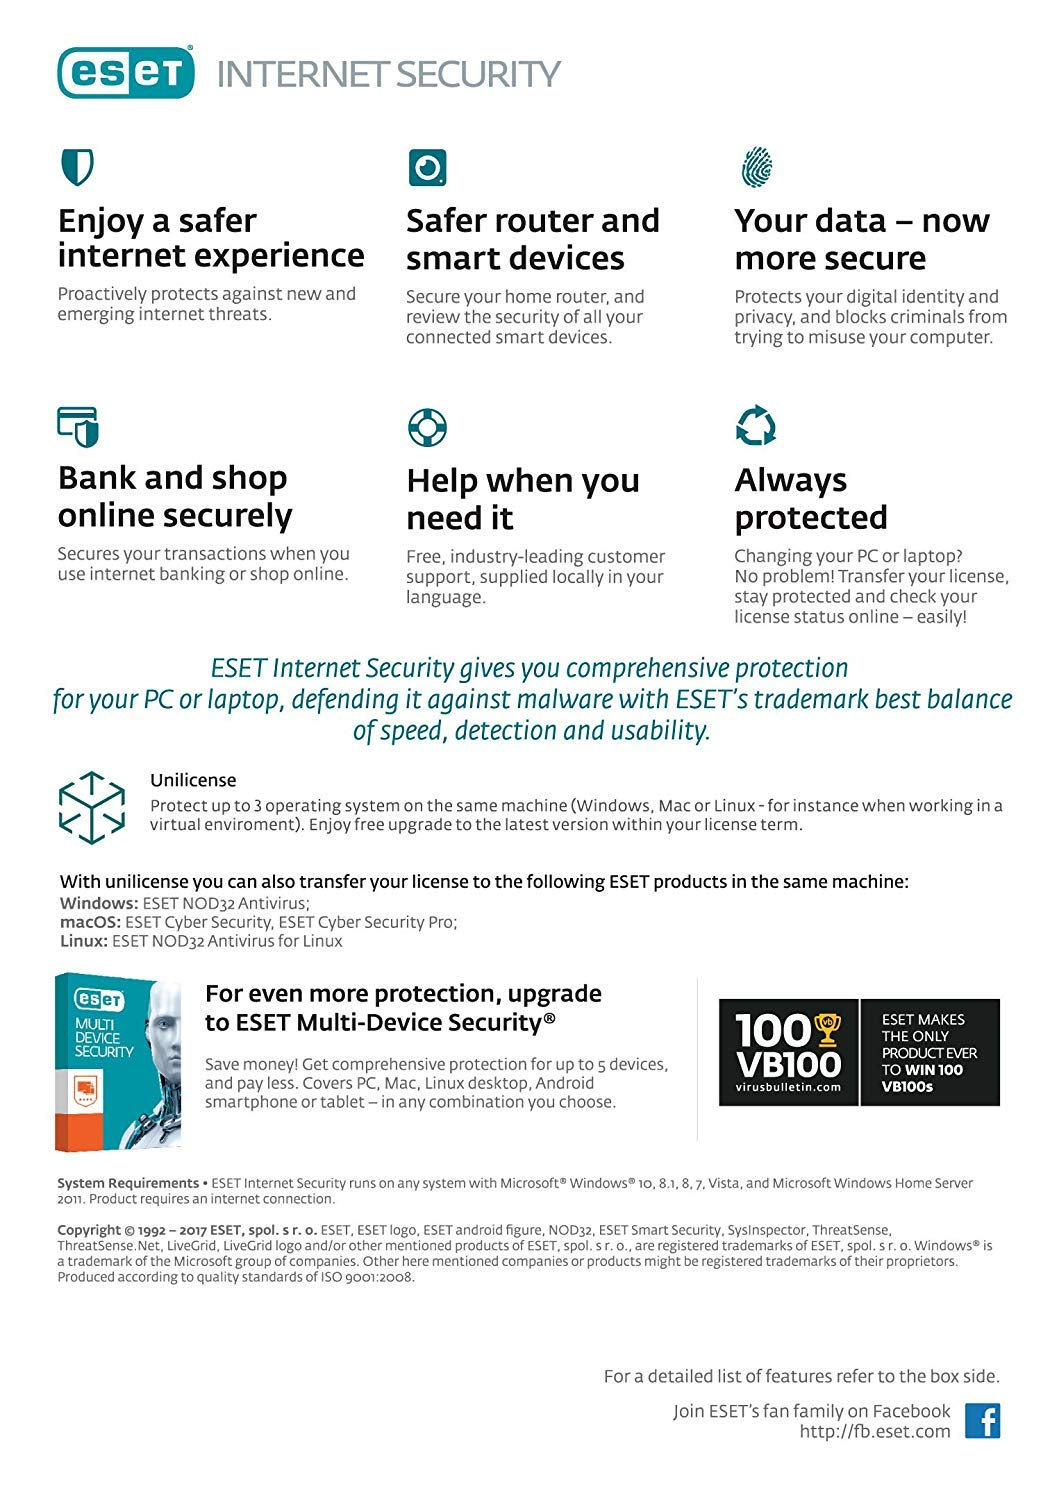 Eset Internet Security V10 1Yr 3-User BIL